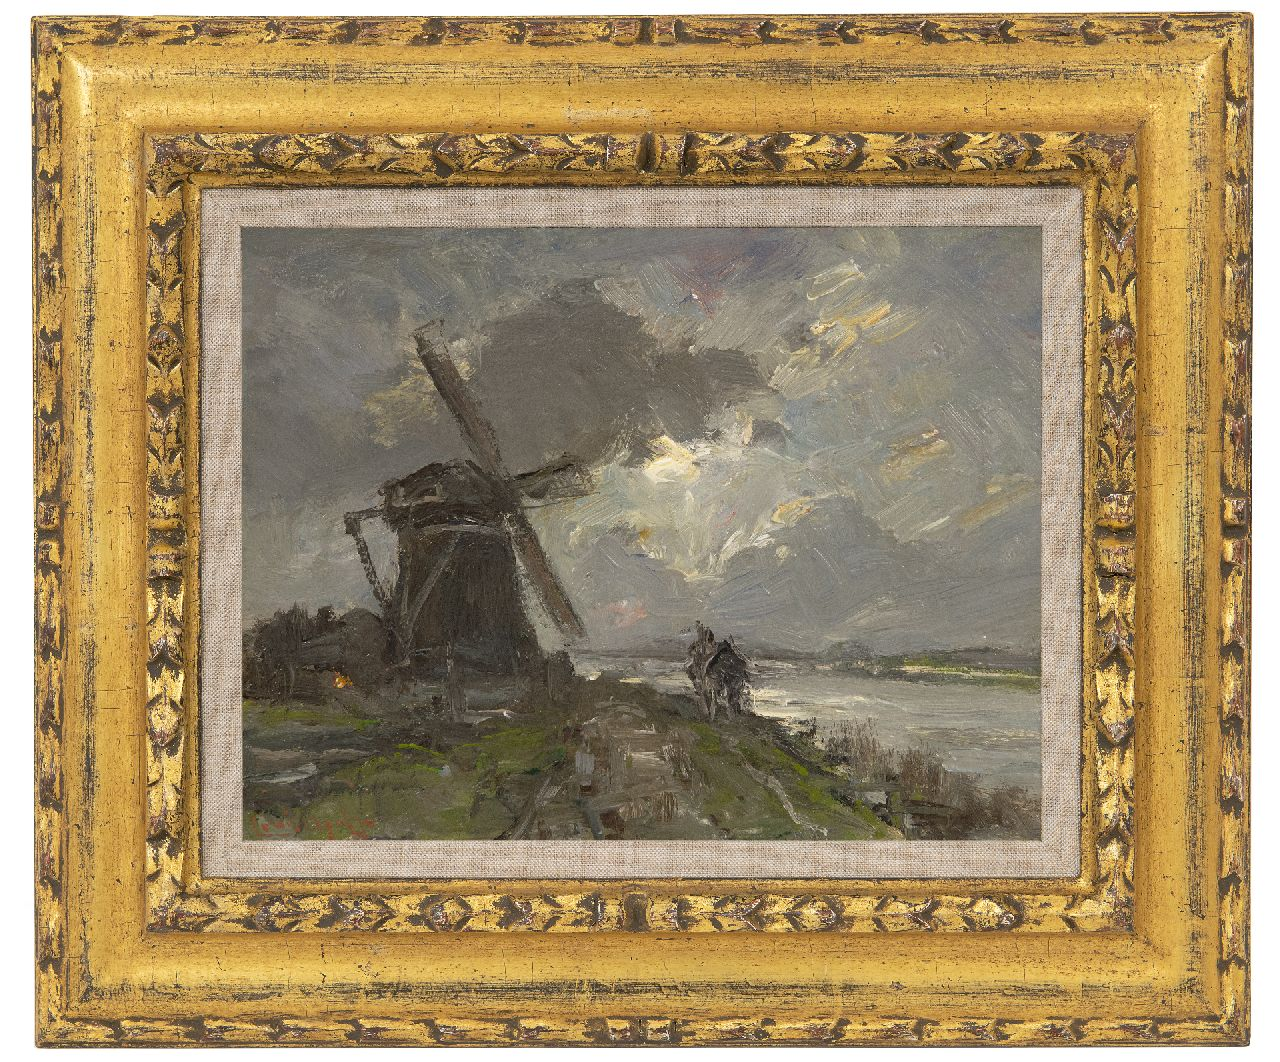 Apol L.F.H.  | Lodewijk Franciscus Hendrik 'Louis' Apol | Paintings offered for sale | Along the canal on a rainy day, oil on painter's board 20.0 x 26.0 cm, signed l.l.